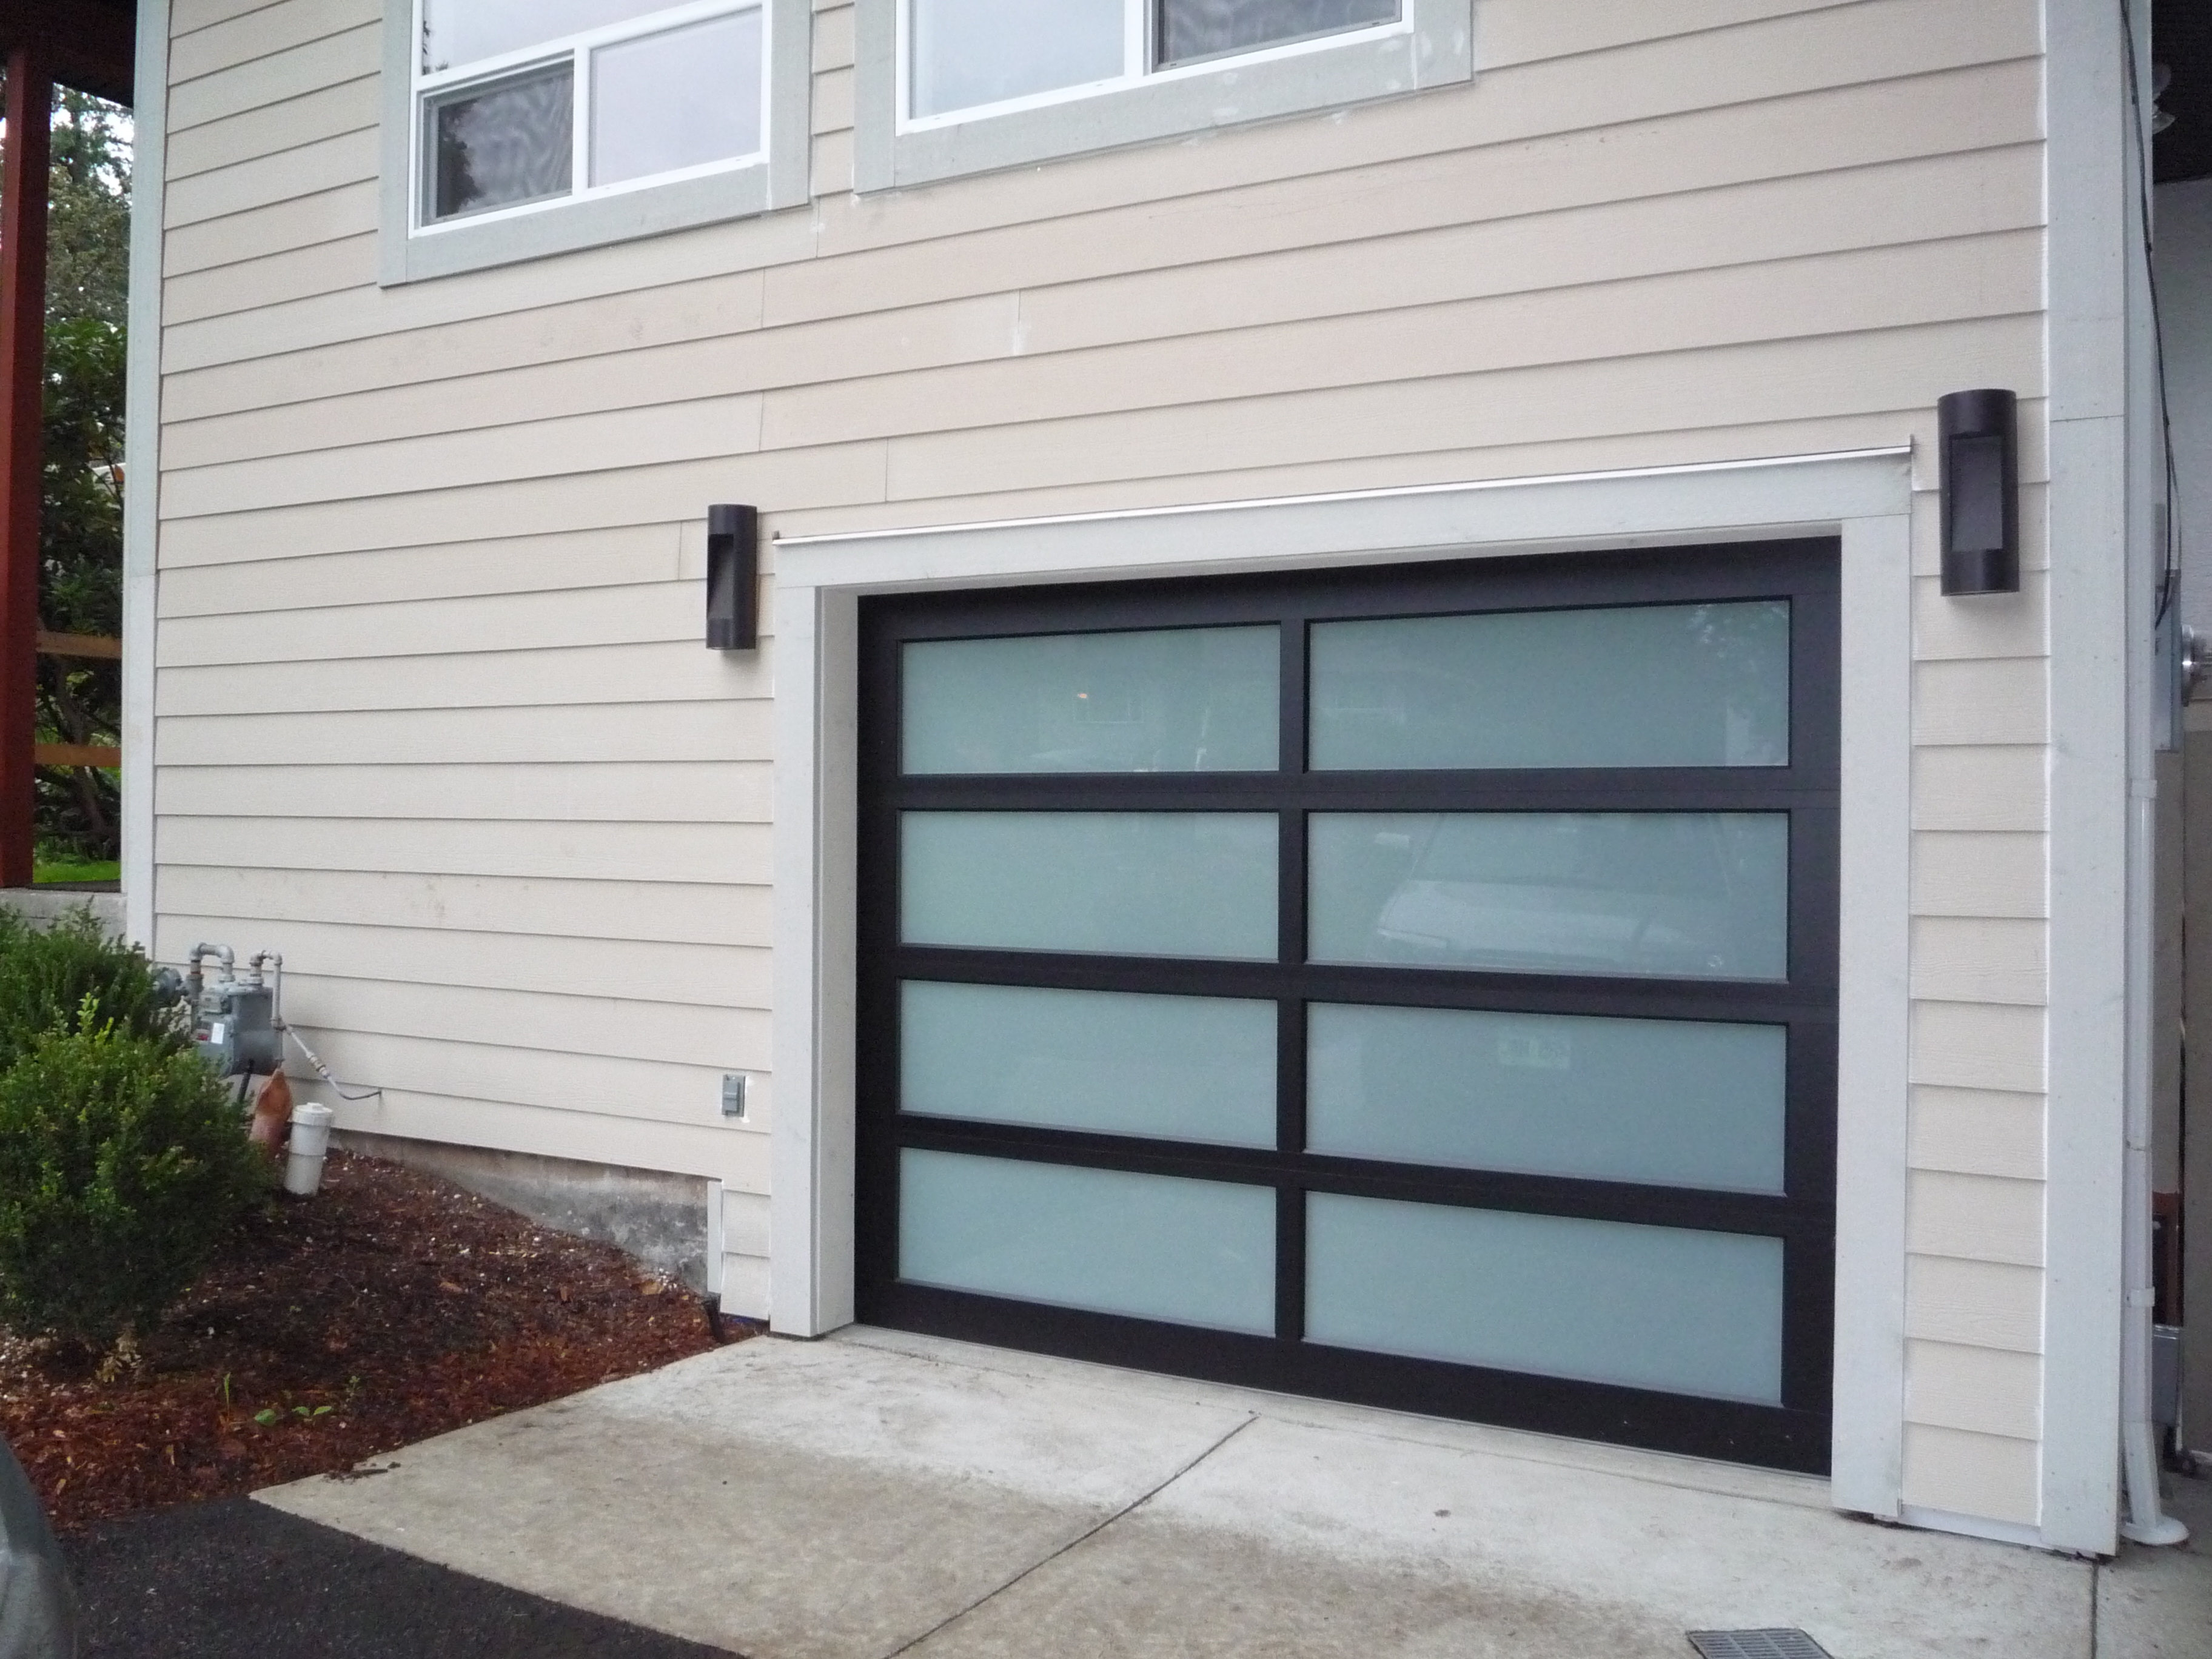 Aluminum Garage Doors : Full view aluminum harbour door